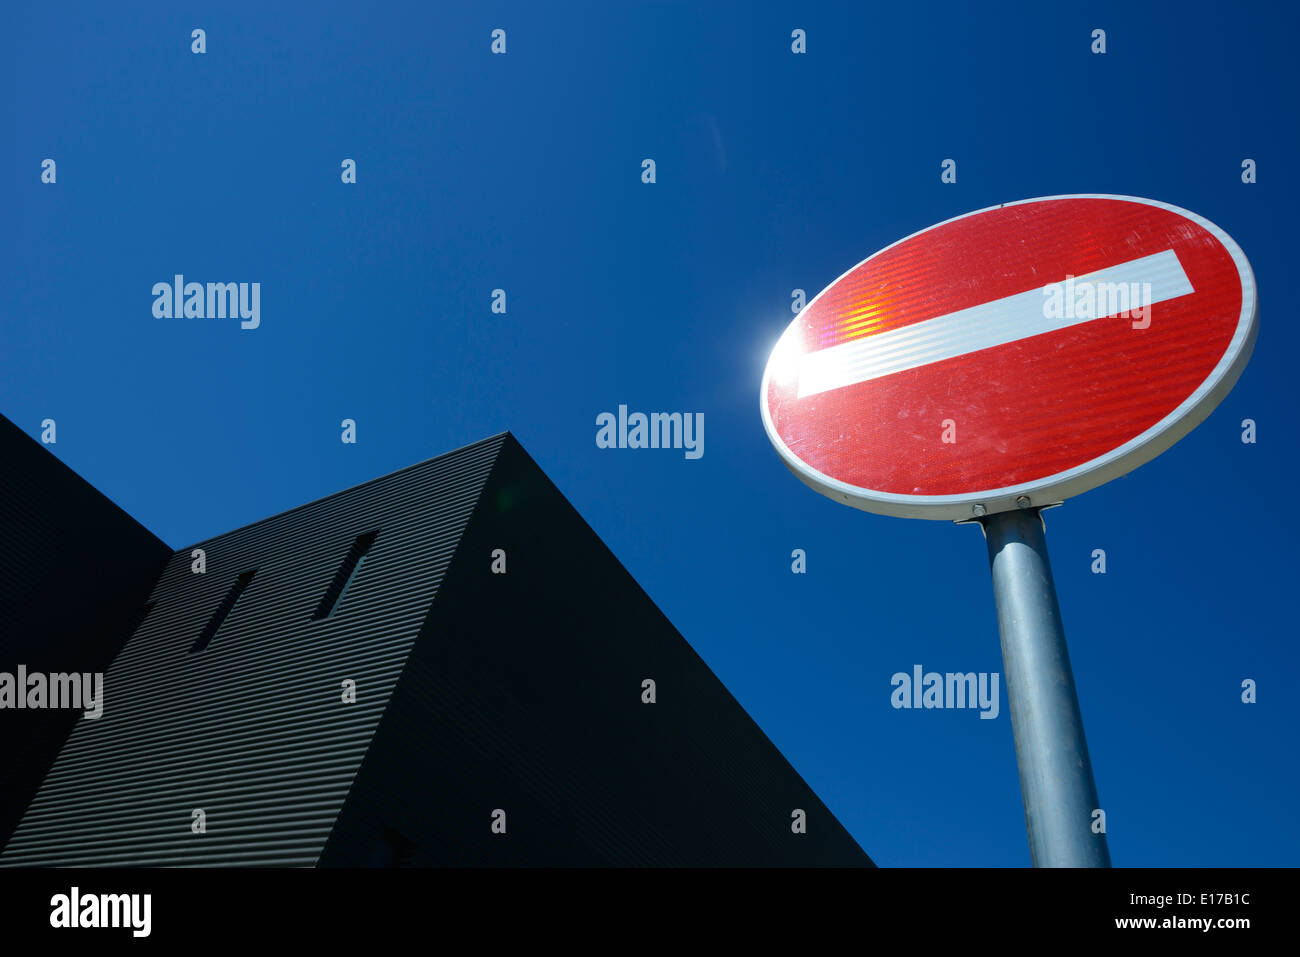 No entry road sign against a clear blue sky - Stock Image